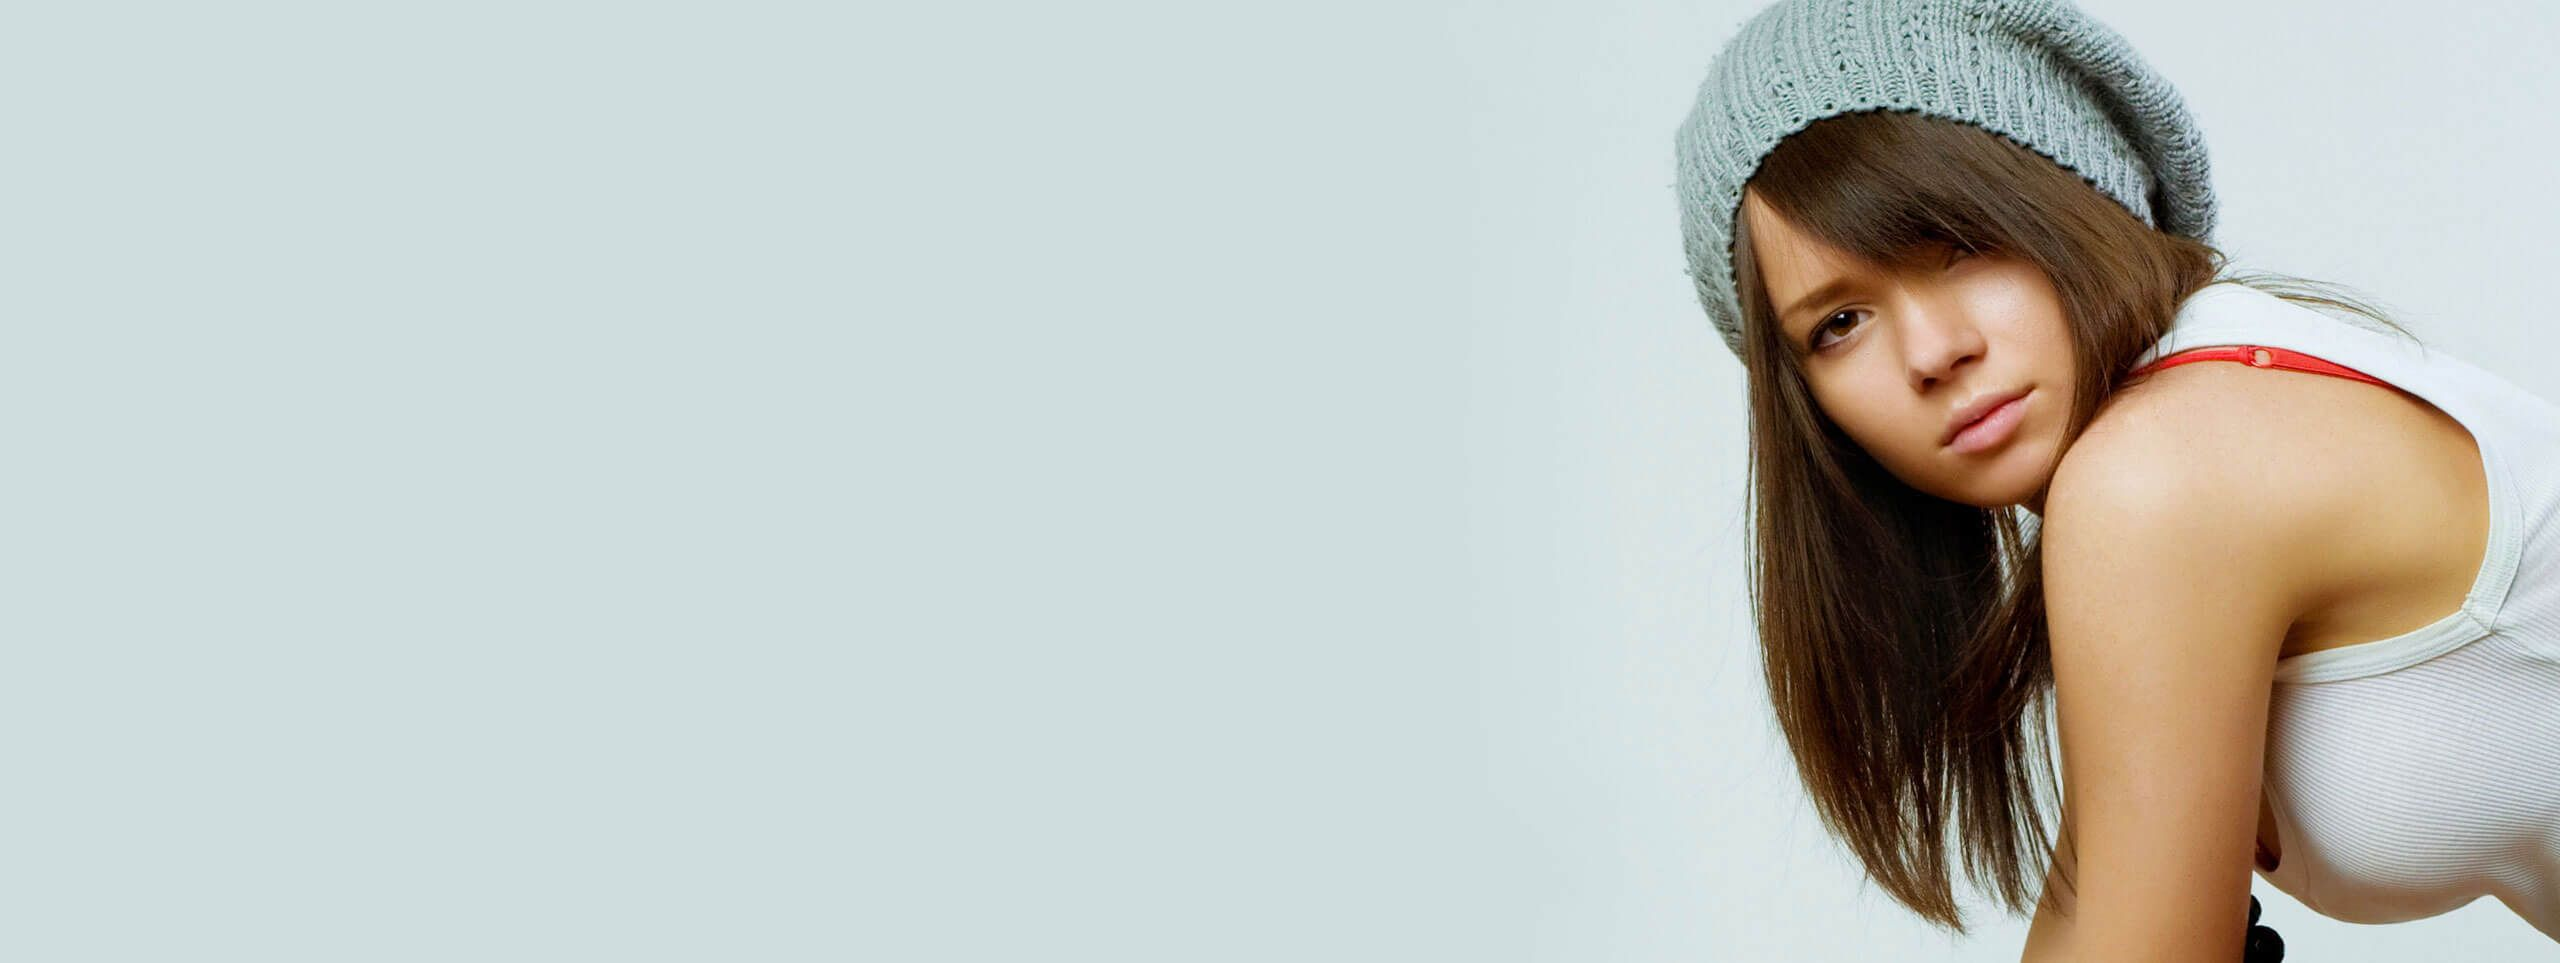 Brunette model wears beanie hat with straight hairstyle and side fringe